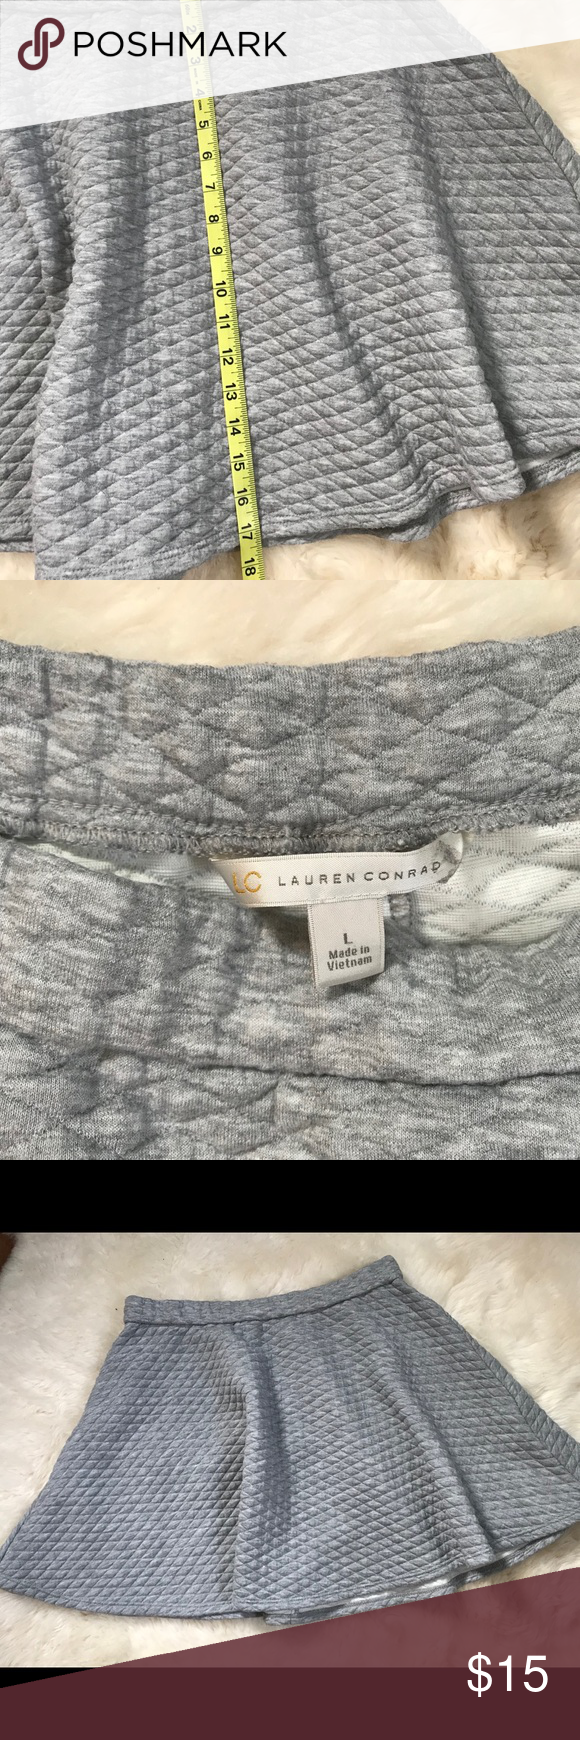 Lauren Conrad Grey mini skirt Grey quilted mini skirt by Lauren Conrad No flaws Smoke free pet free home LC Lauren Conrad Skirts Circle & Skater #laurenconradhair Lauren Conrad Grey mini skirt Grey quilted mini skirt by Lauren Conrad No flaws Smoke free pet free home LC Lauren Conrad Skirts Circle & Skater #laurenconradhair